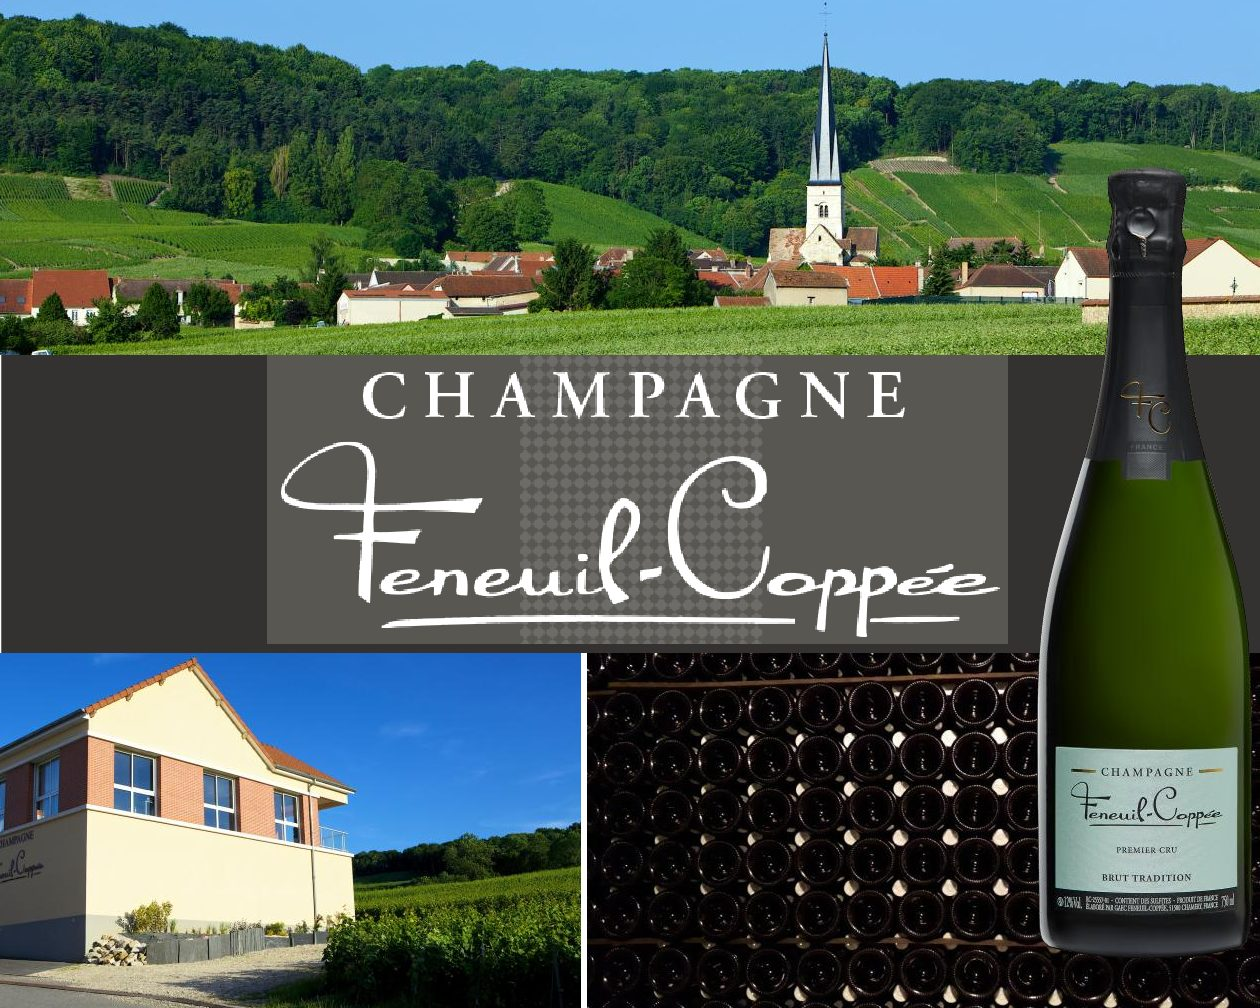 Champagne Feneuil-Coppée